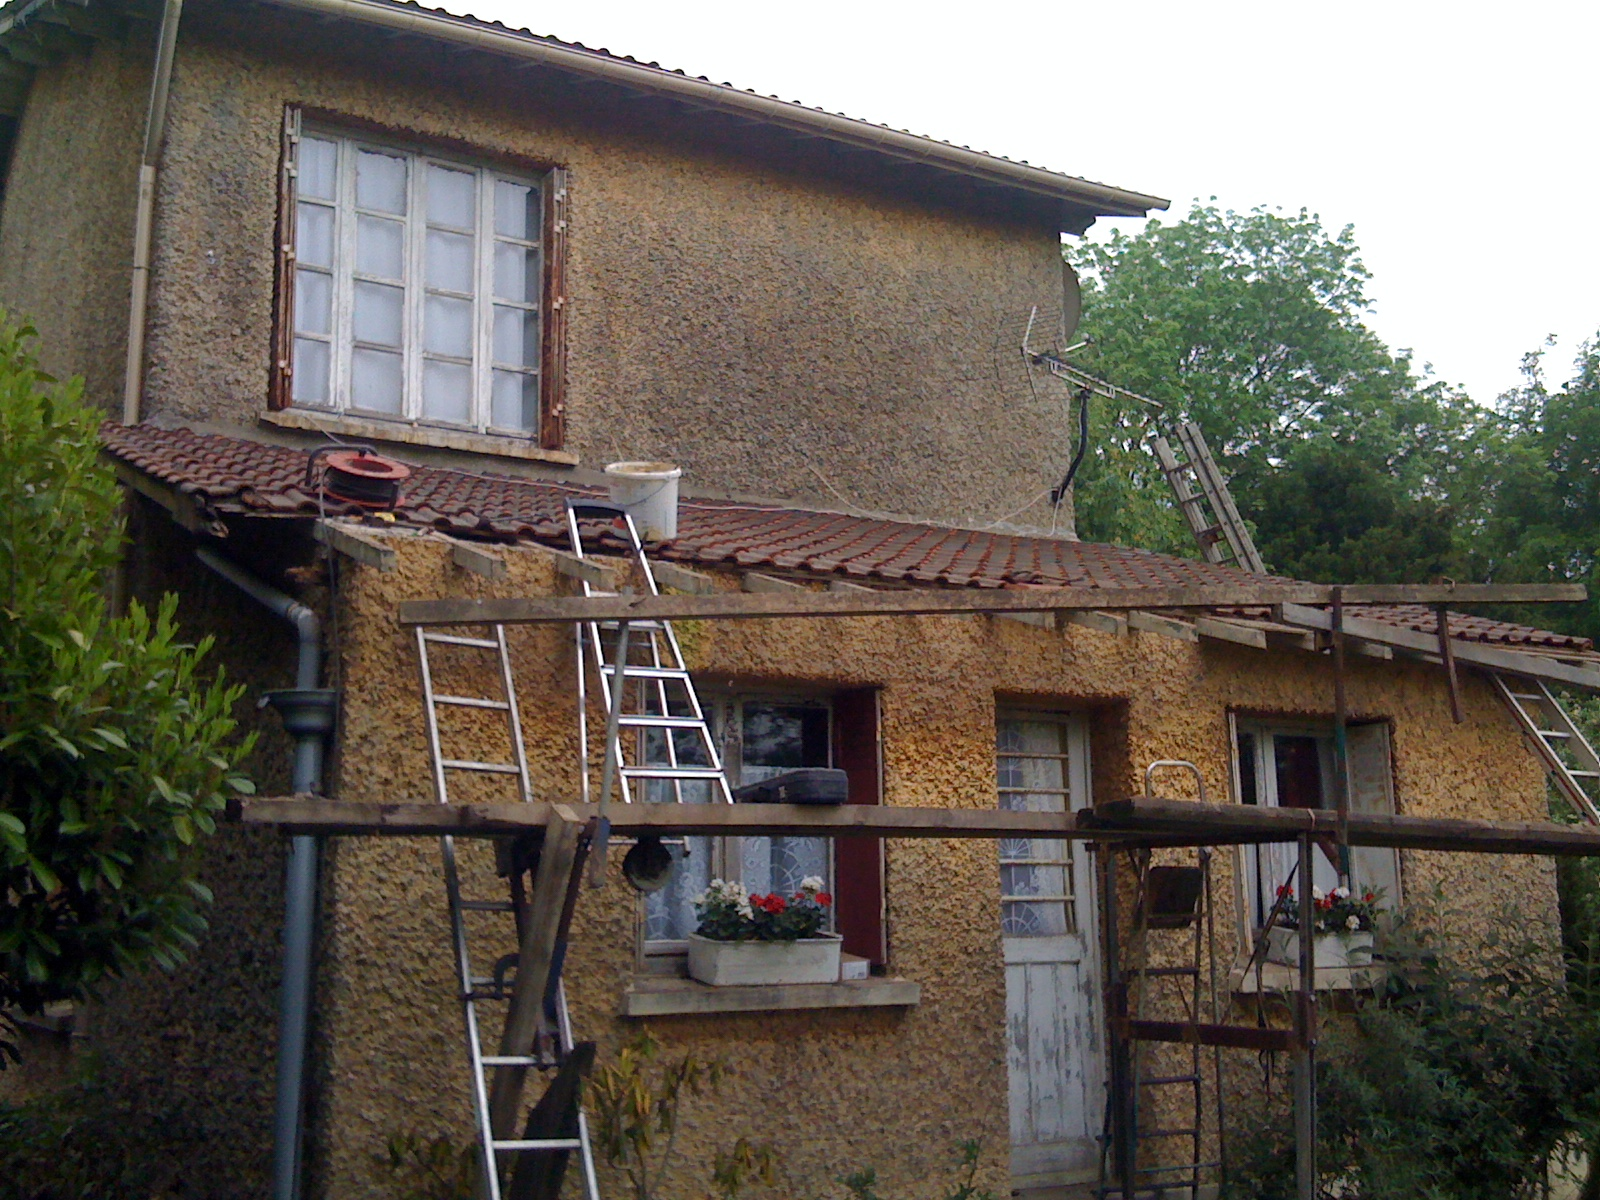 Renovation toiture tuile gallery of renovation toiture for Petite tuile canal